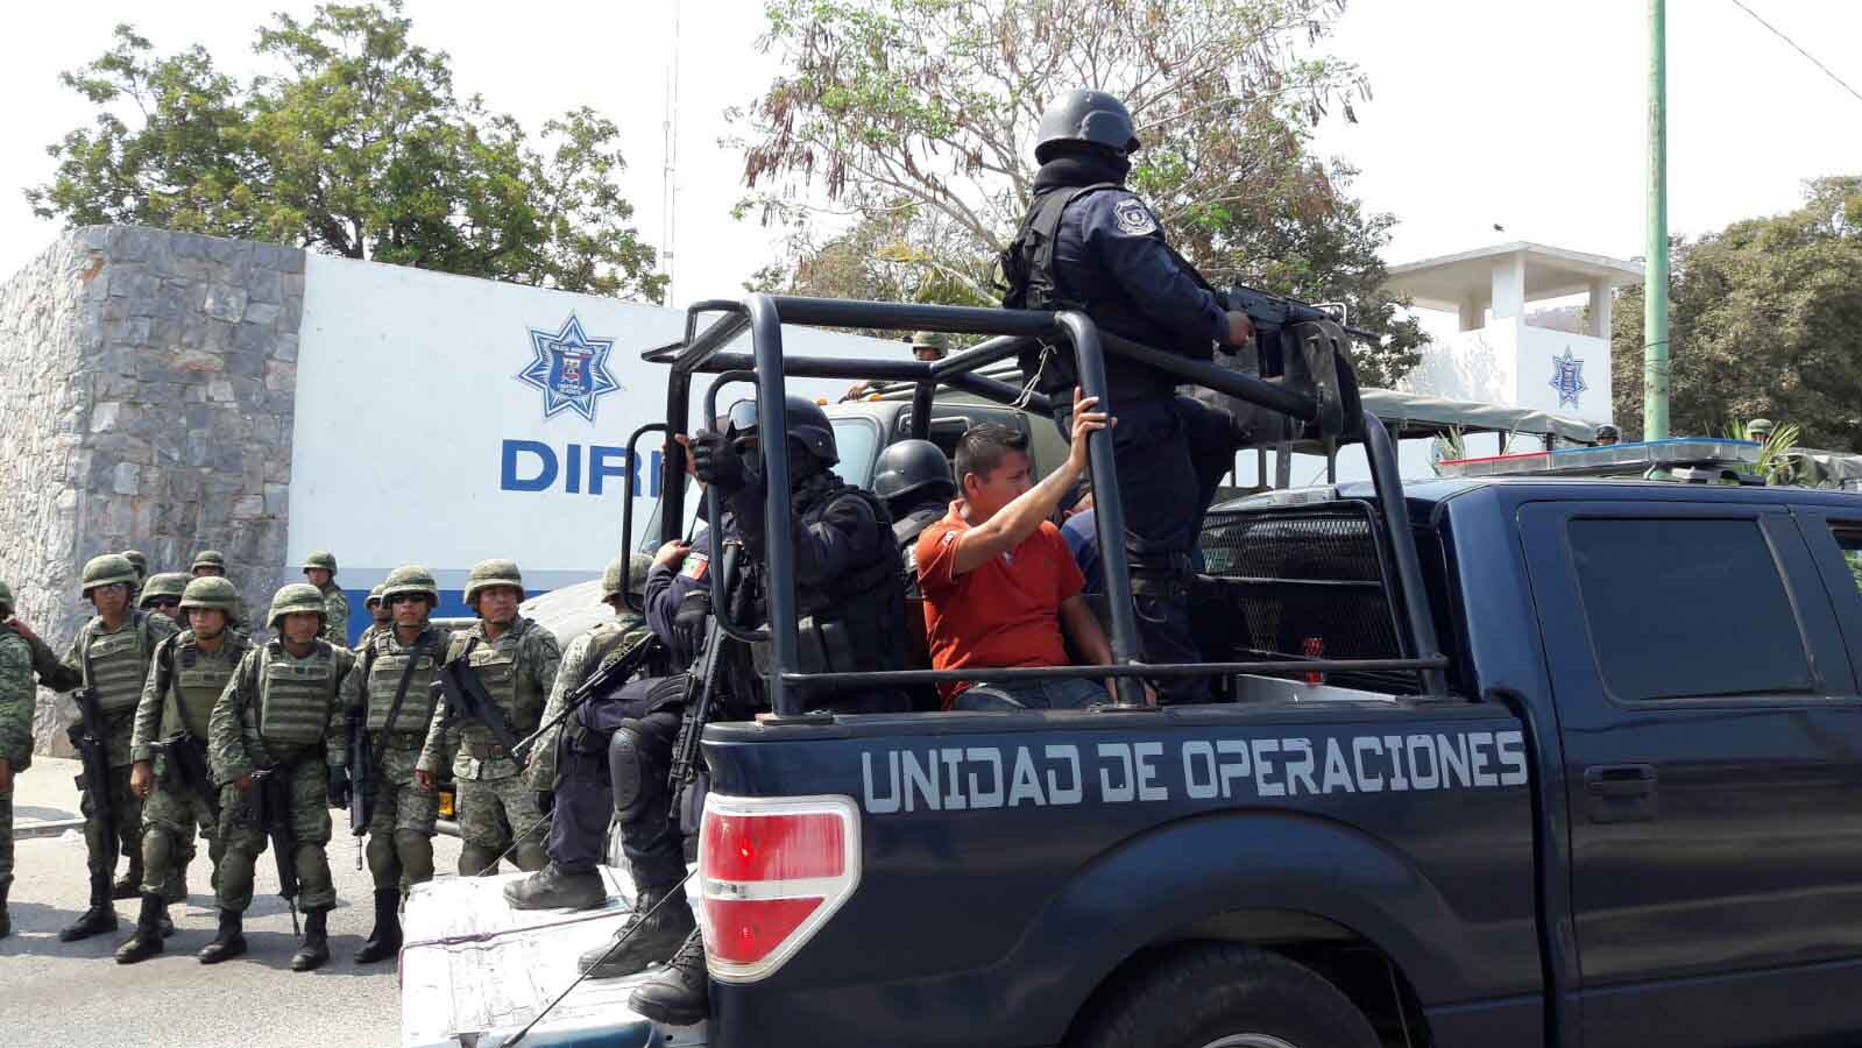 Since last week's operation, the Pacific resort's municipal force has been taken off duty, leaving the state police and Mexican military to patrol the streets.